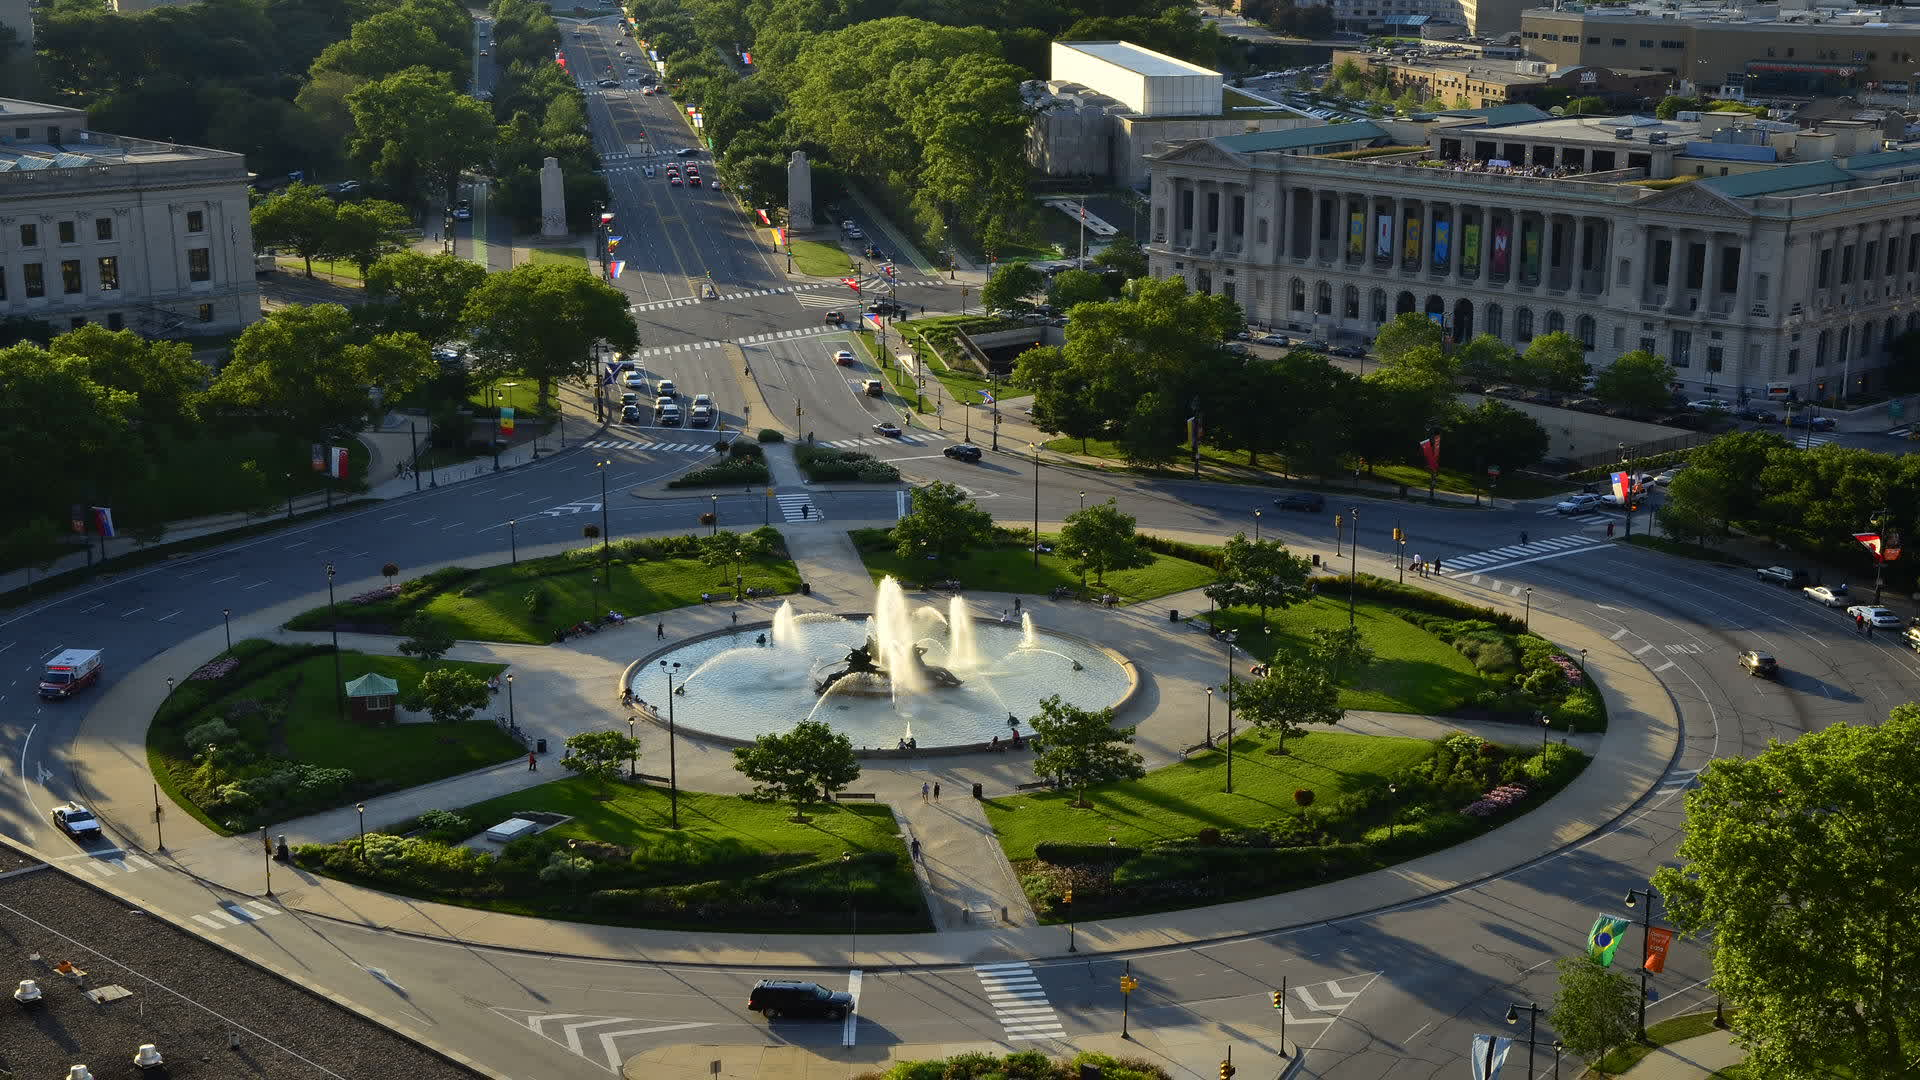 chicago museum map with You Call It Is The Ben Franklin Parkway One Big Mistake on Spotlight Carlo Scarpa in addition 26899413395 additionally 8052264959 in addition Filipino Basketball Association Of likewise Depaul Center.